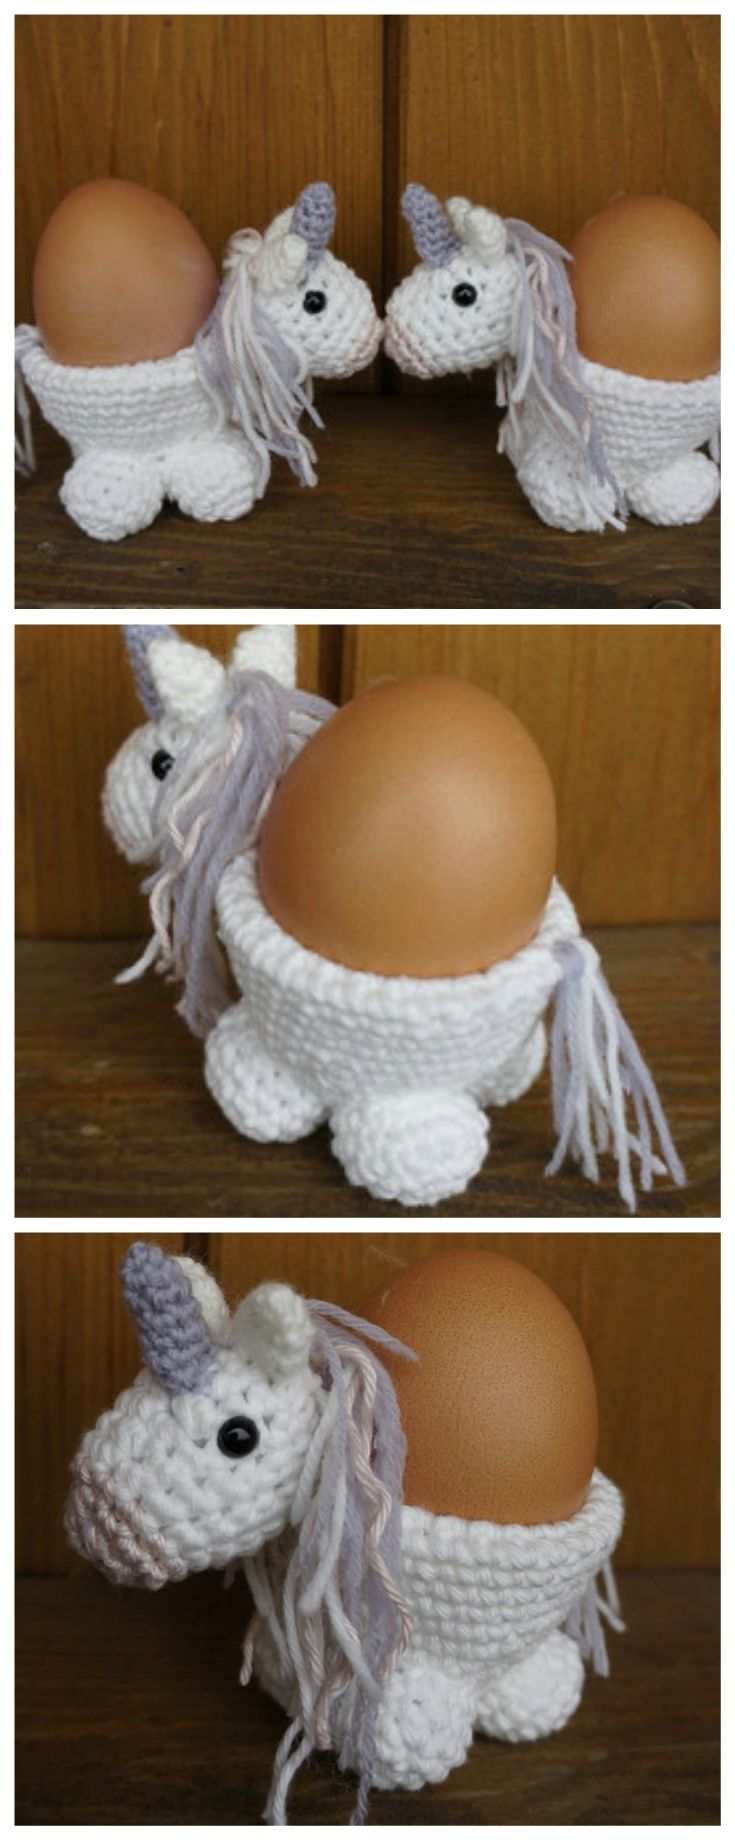 Häkelanleitung für süßen Einhorn Eierbecher/ crochet instructions for a cute unicorn egg cup made by Crotcheting-anni via DaWanda.com